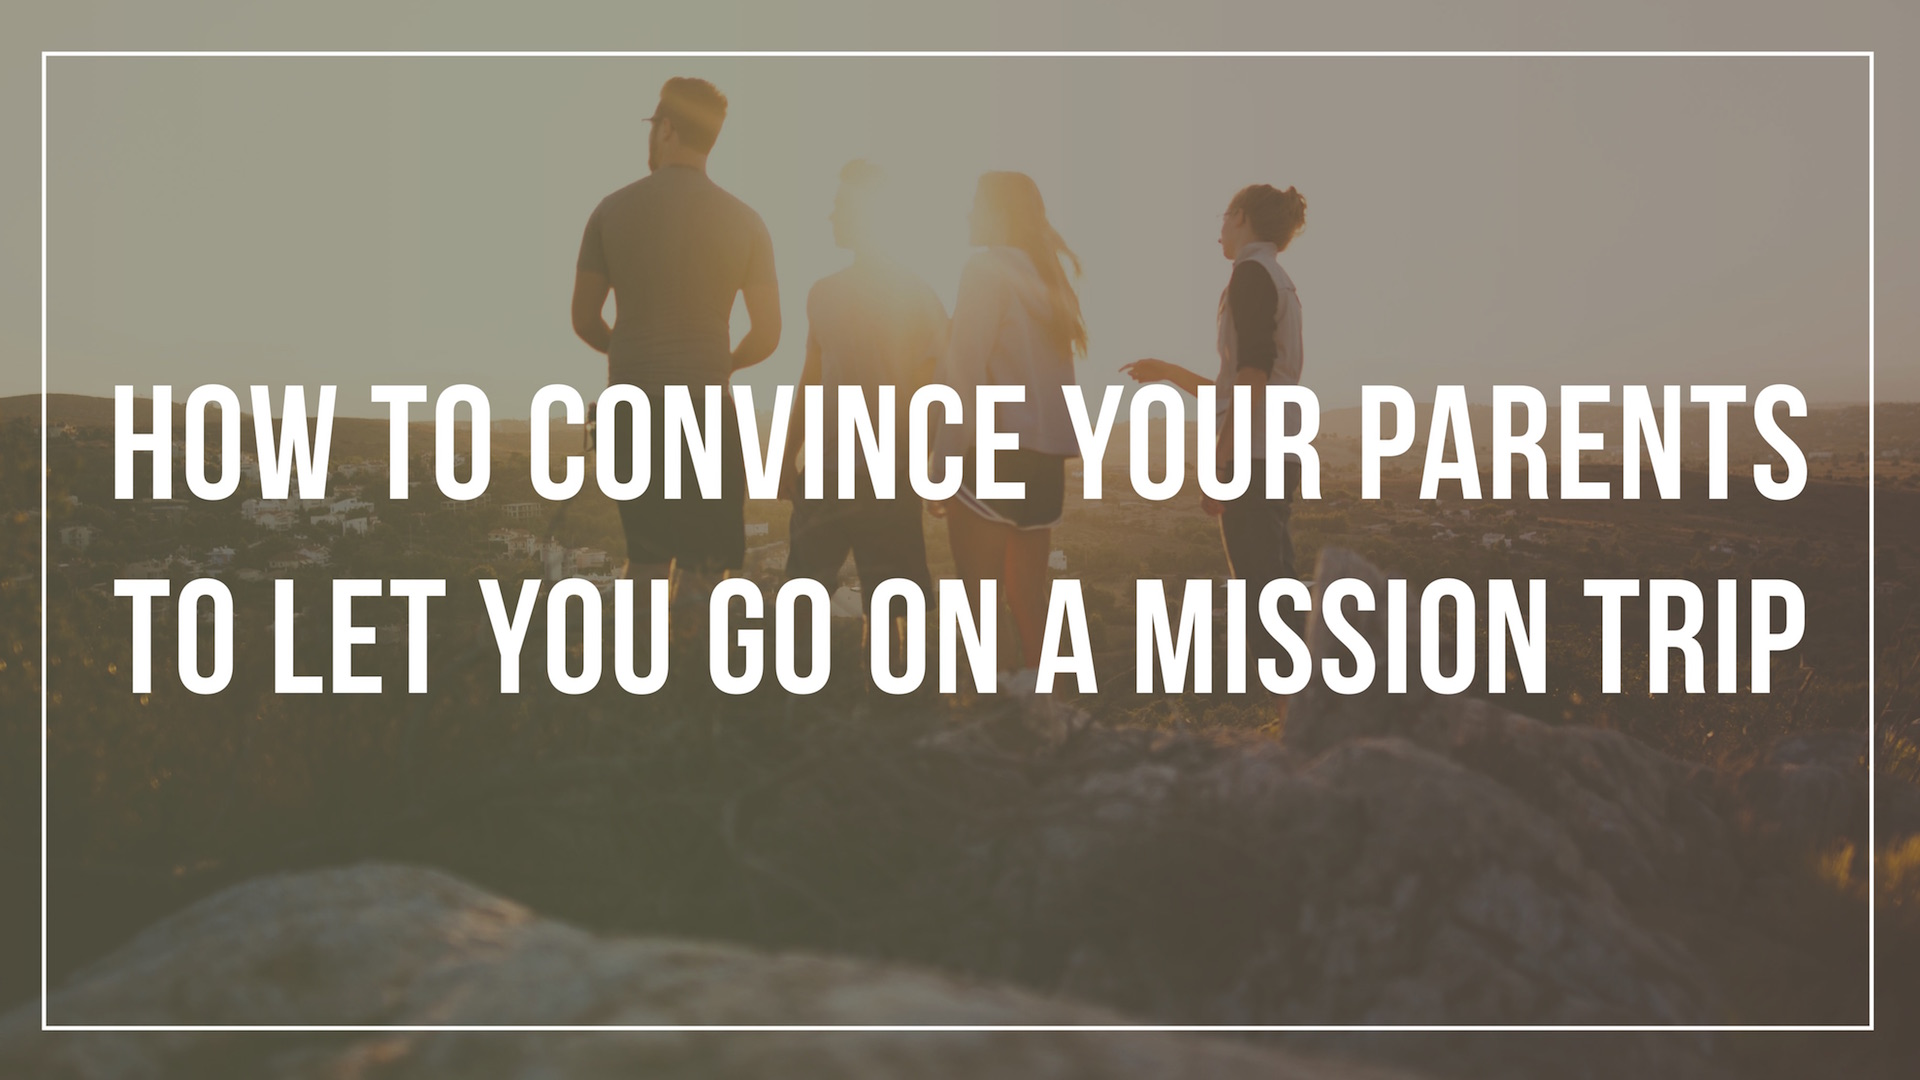 How to convince your parents to let you go on a mission trip